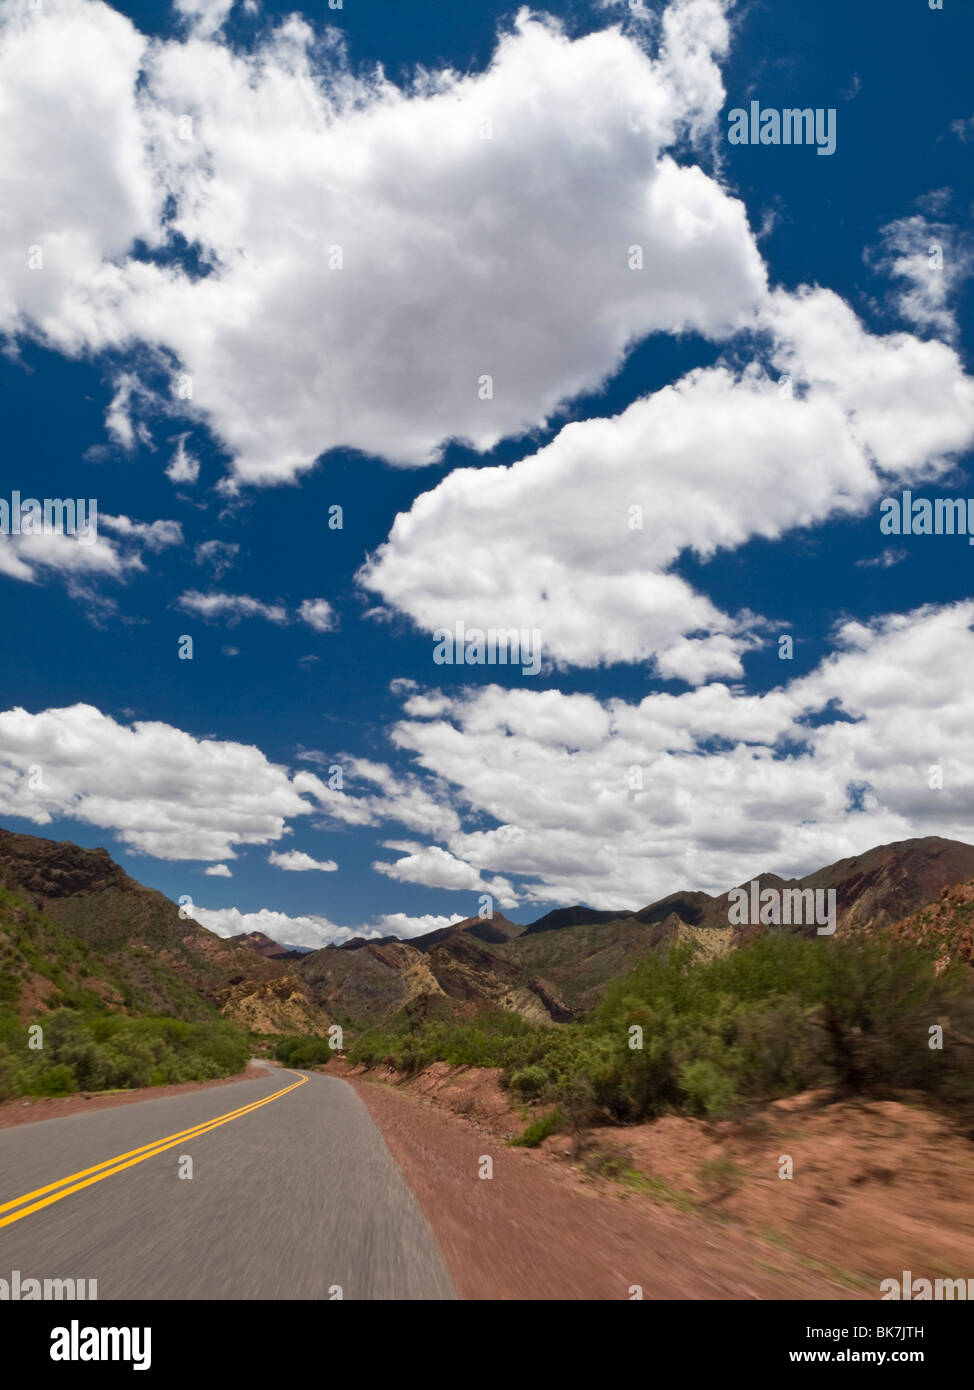 Driving on a road through a mountain landscape. - Stock Image